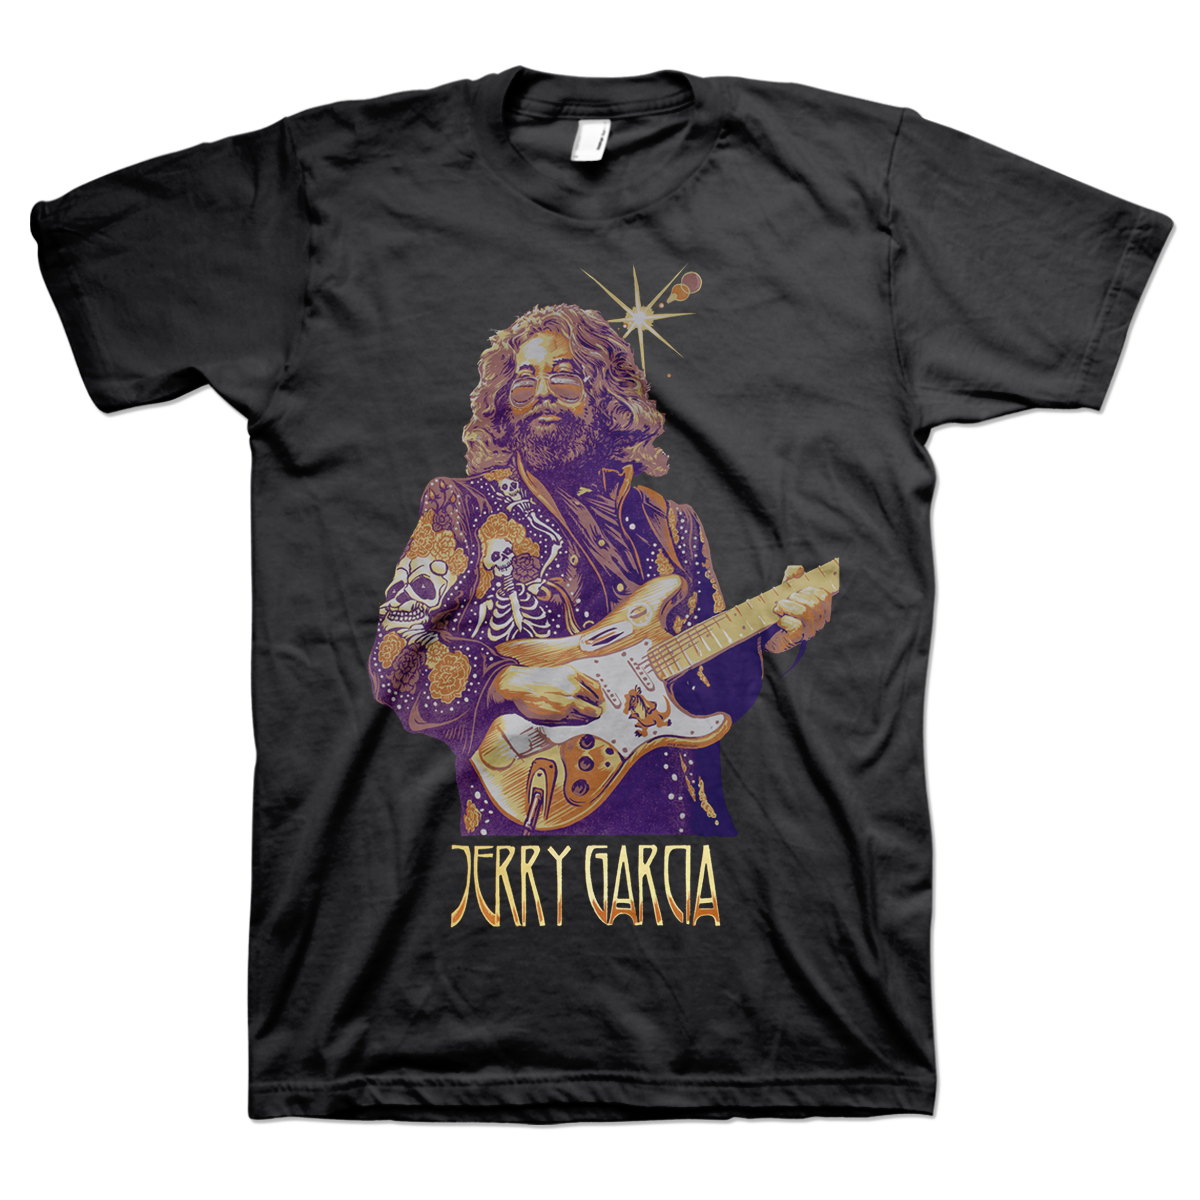 Jerry Garcia Nudie Suit Organic T-Shirt